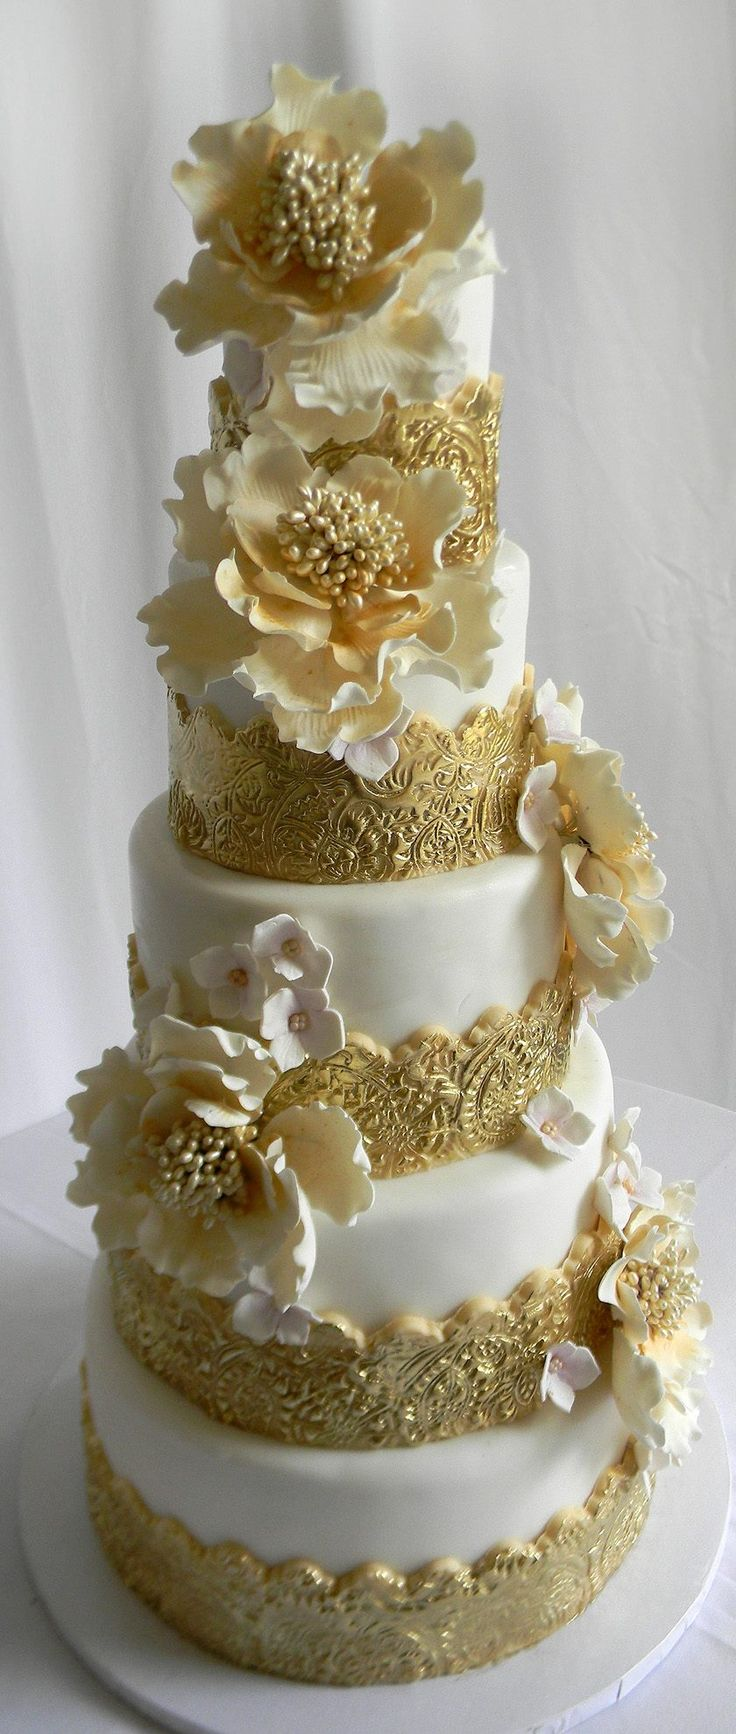 All gold and white 6 tier wedding cake